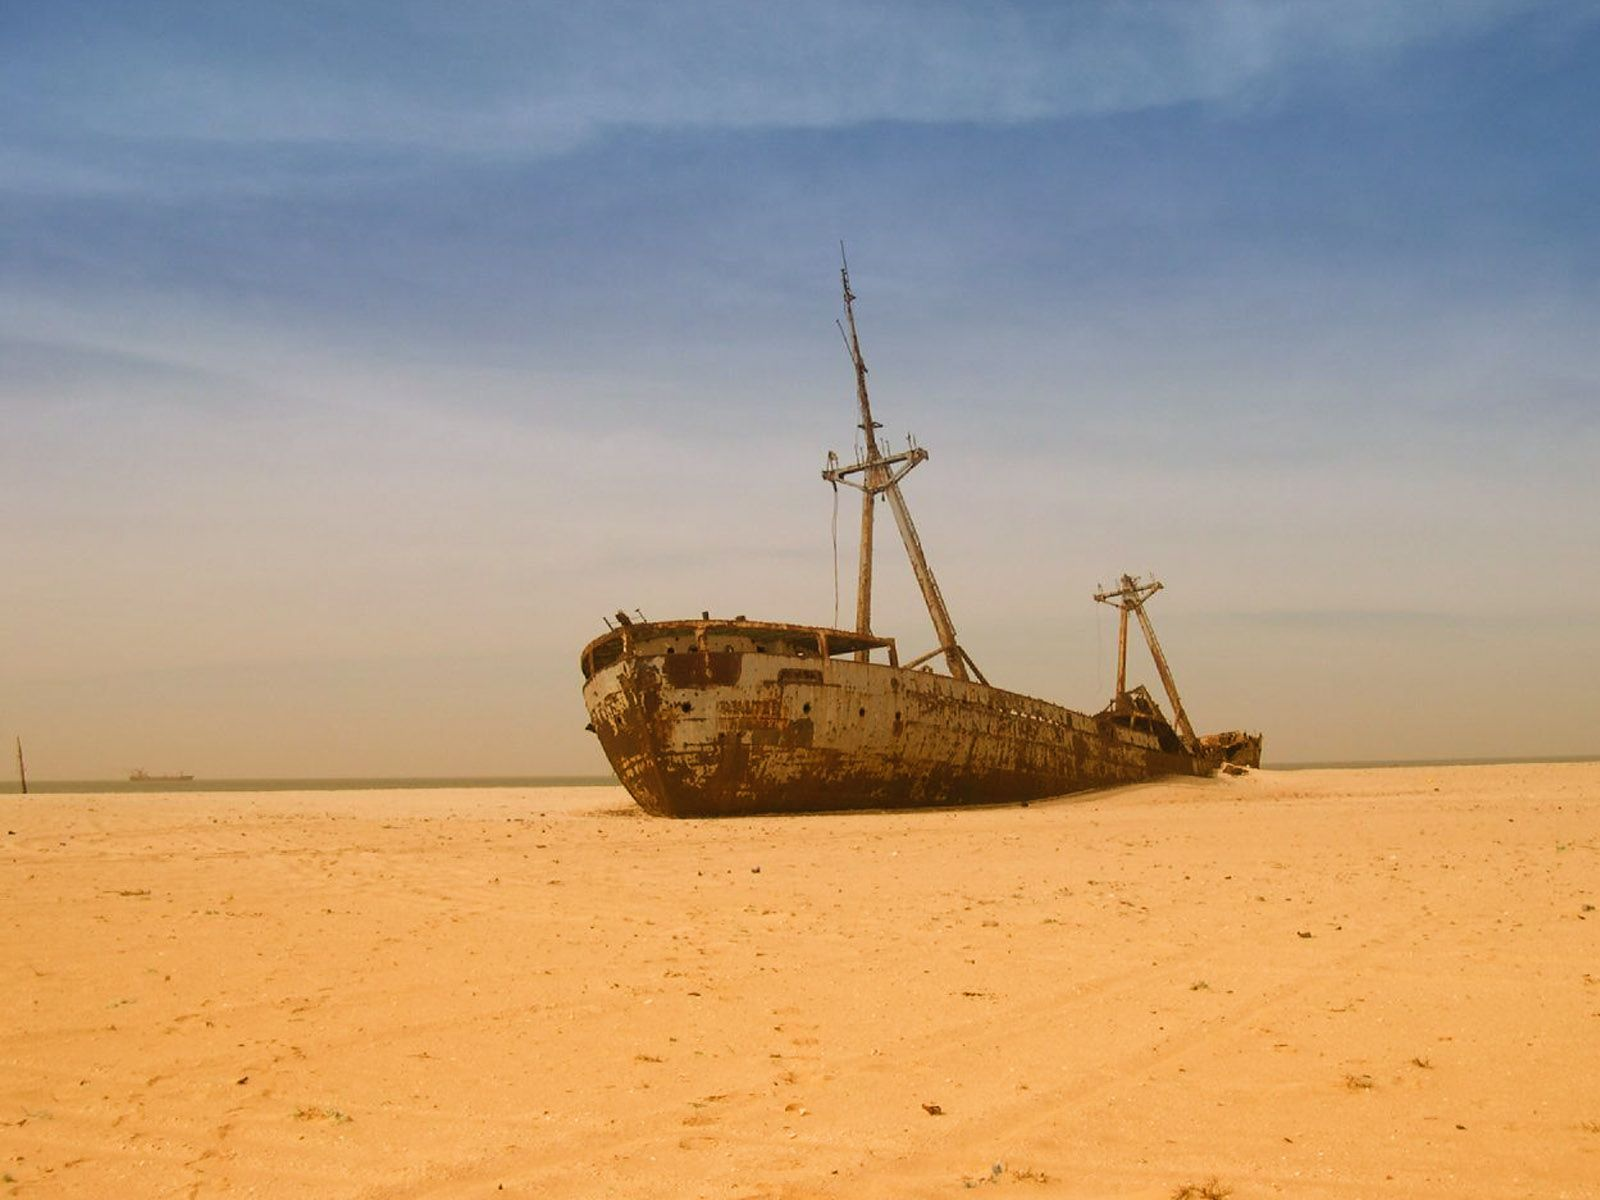 the shipwreck Define shipwreck: a wrecked ship or its parts the destruction or loss of a ship an irretrievable loss or failure — shipwreck in a sentence.